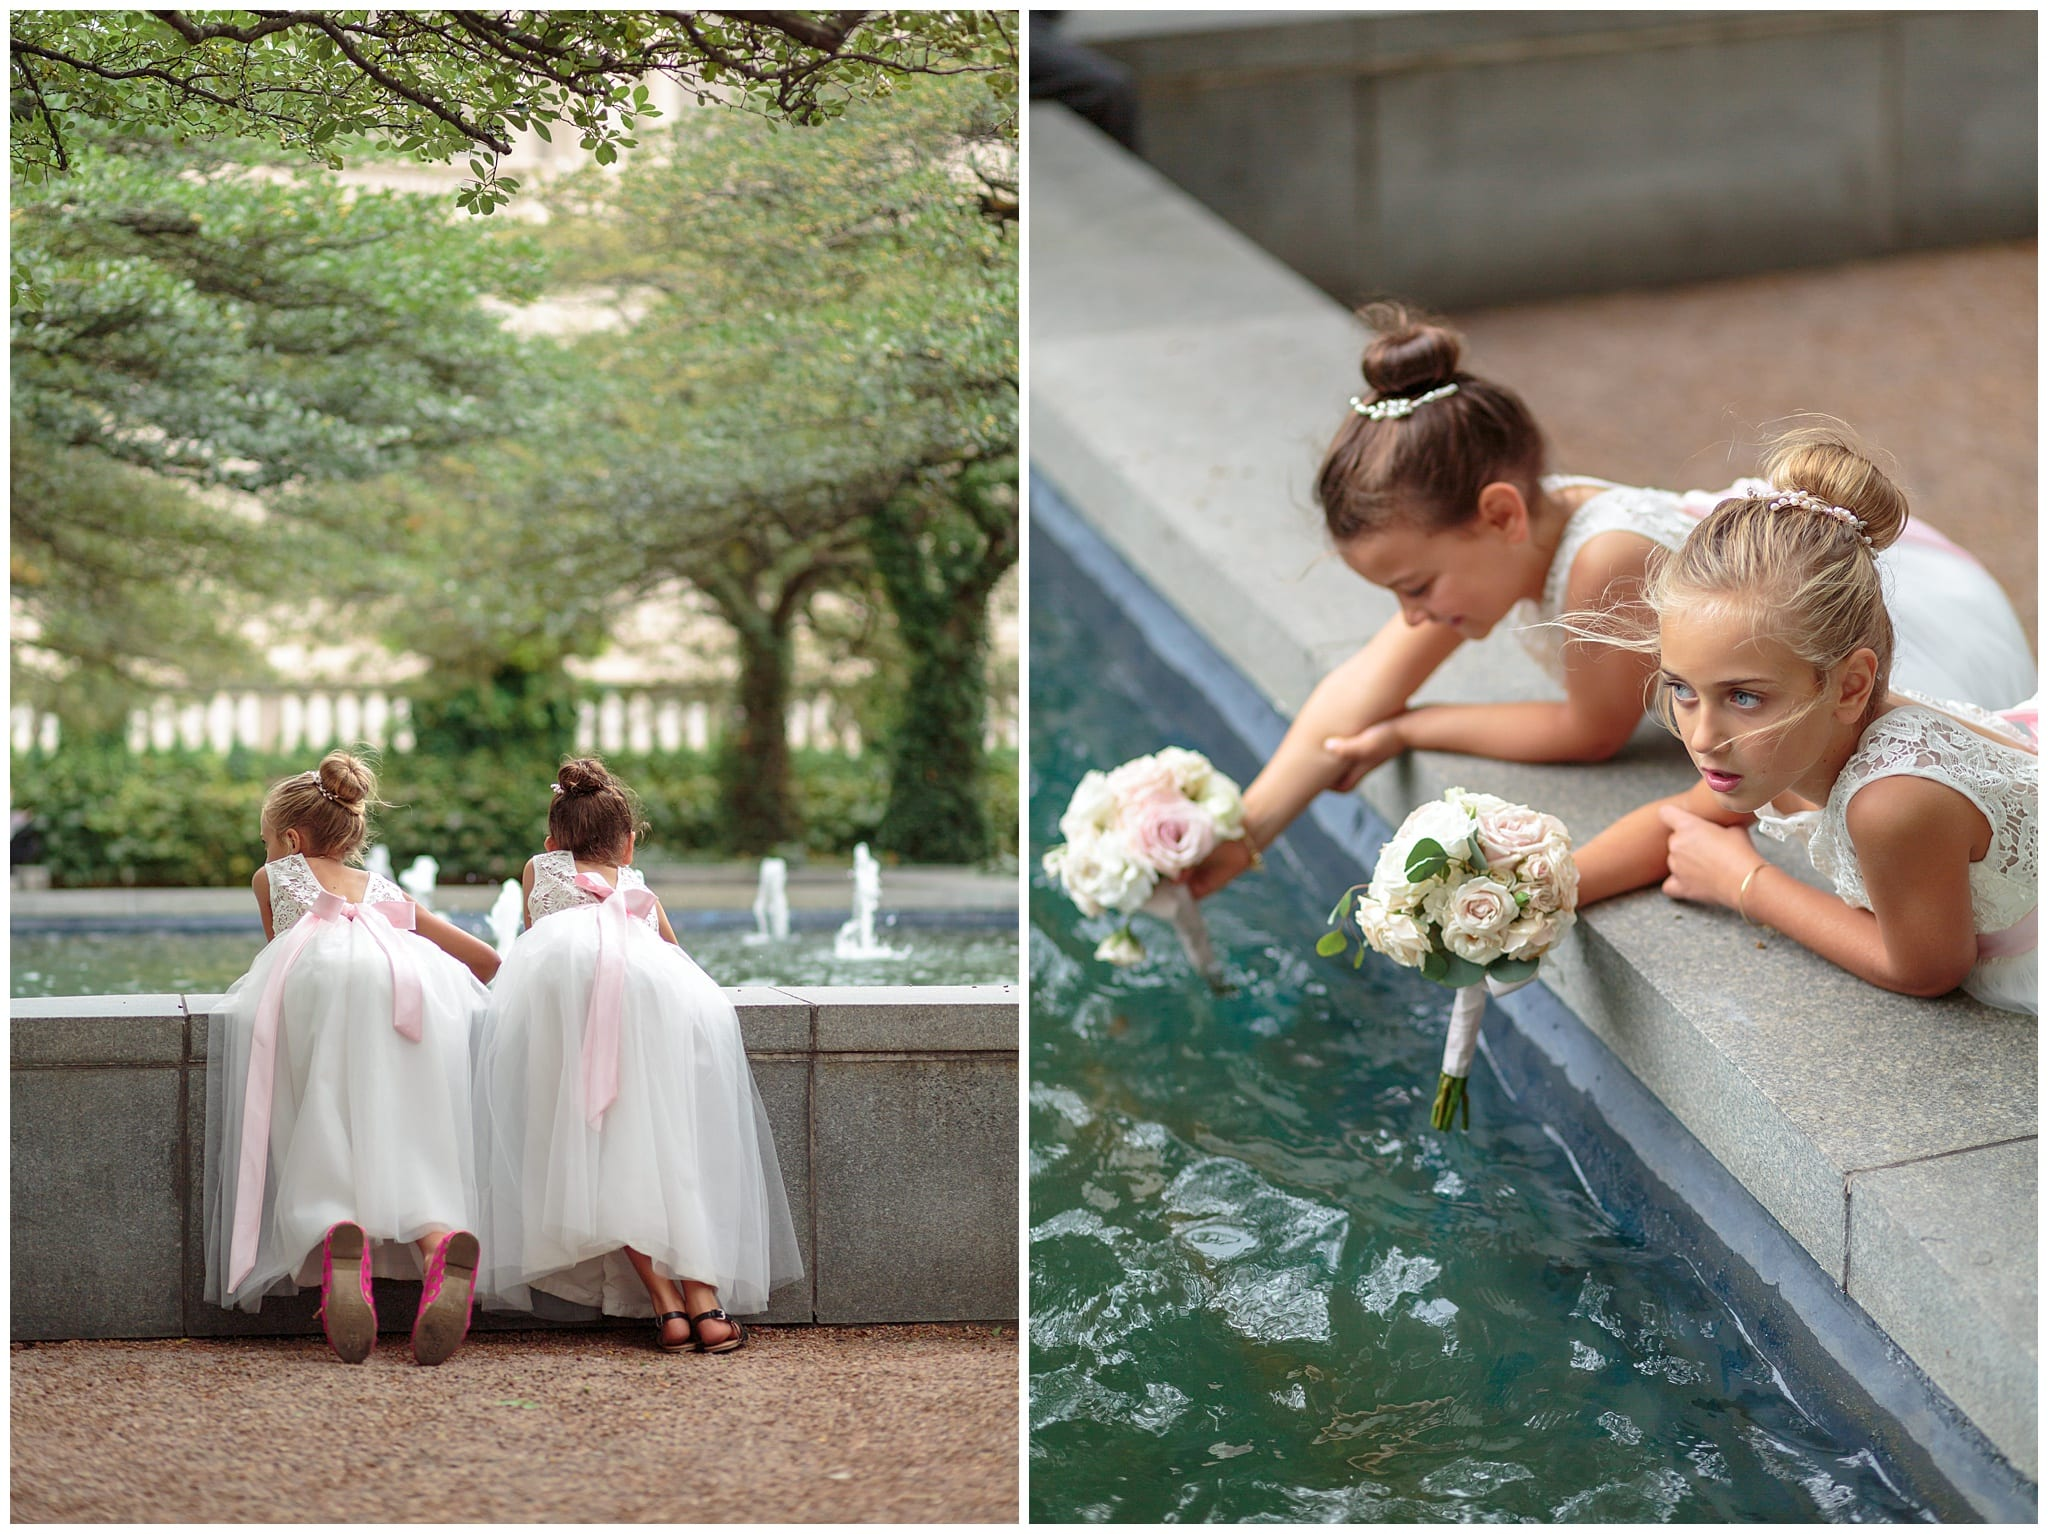 Art Institute Wedding - Wes Craft Photography